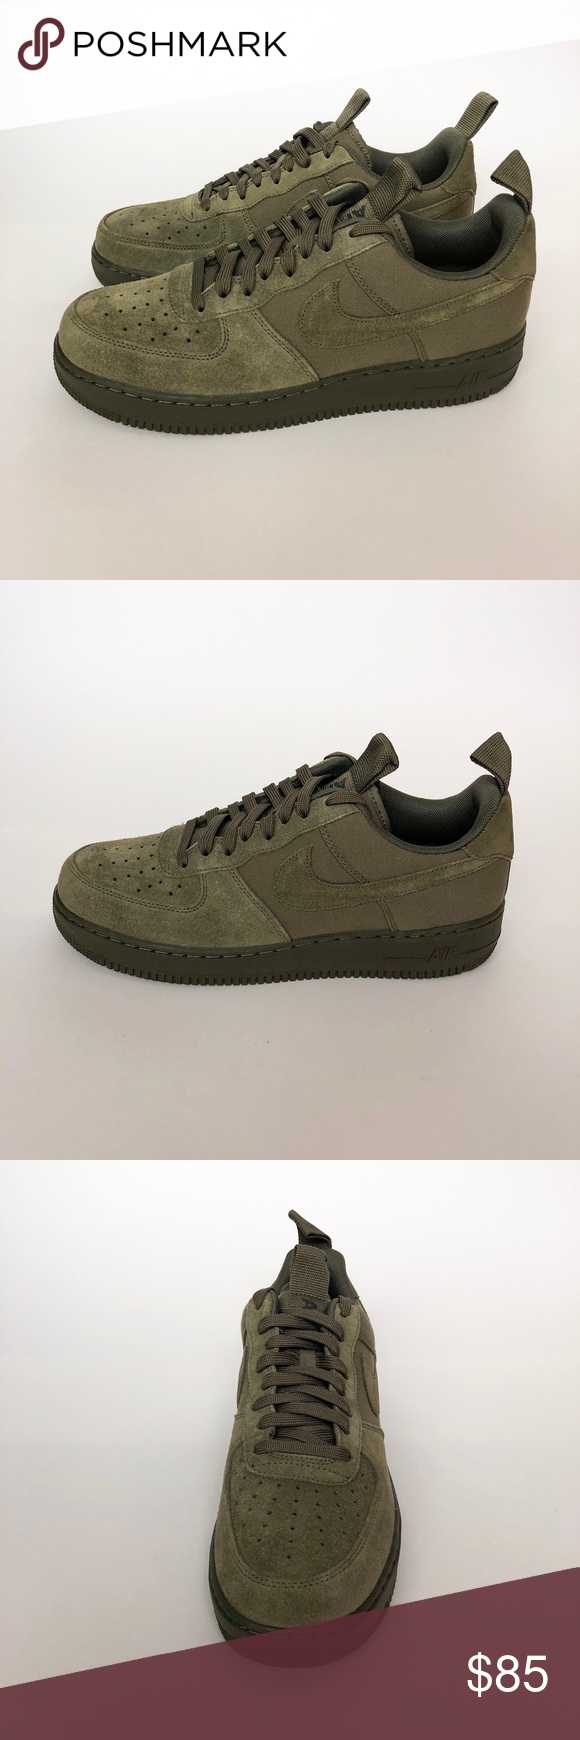 separation shoes 472f0 c28a9 Nike Air Force One Low Suede Canvas Brand New Nike Air Force 1 07  Excellent condition shoes are deadstock Perfect for the upcoming season  100% Authentic ...